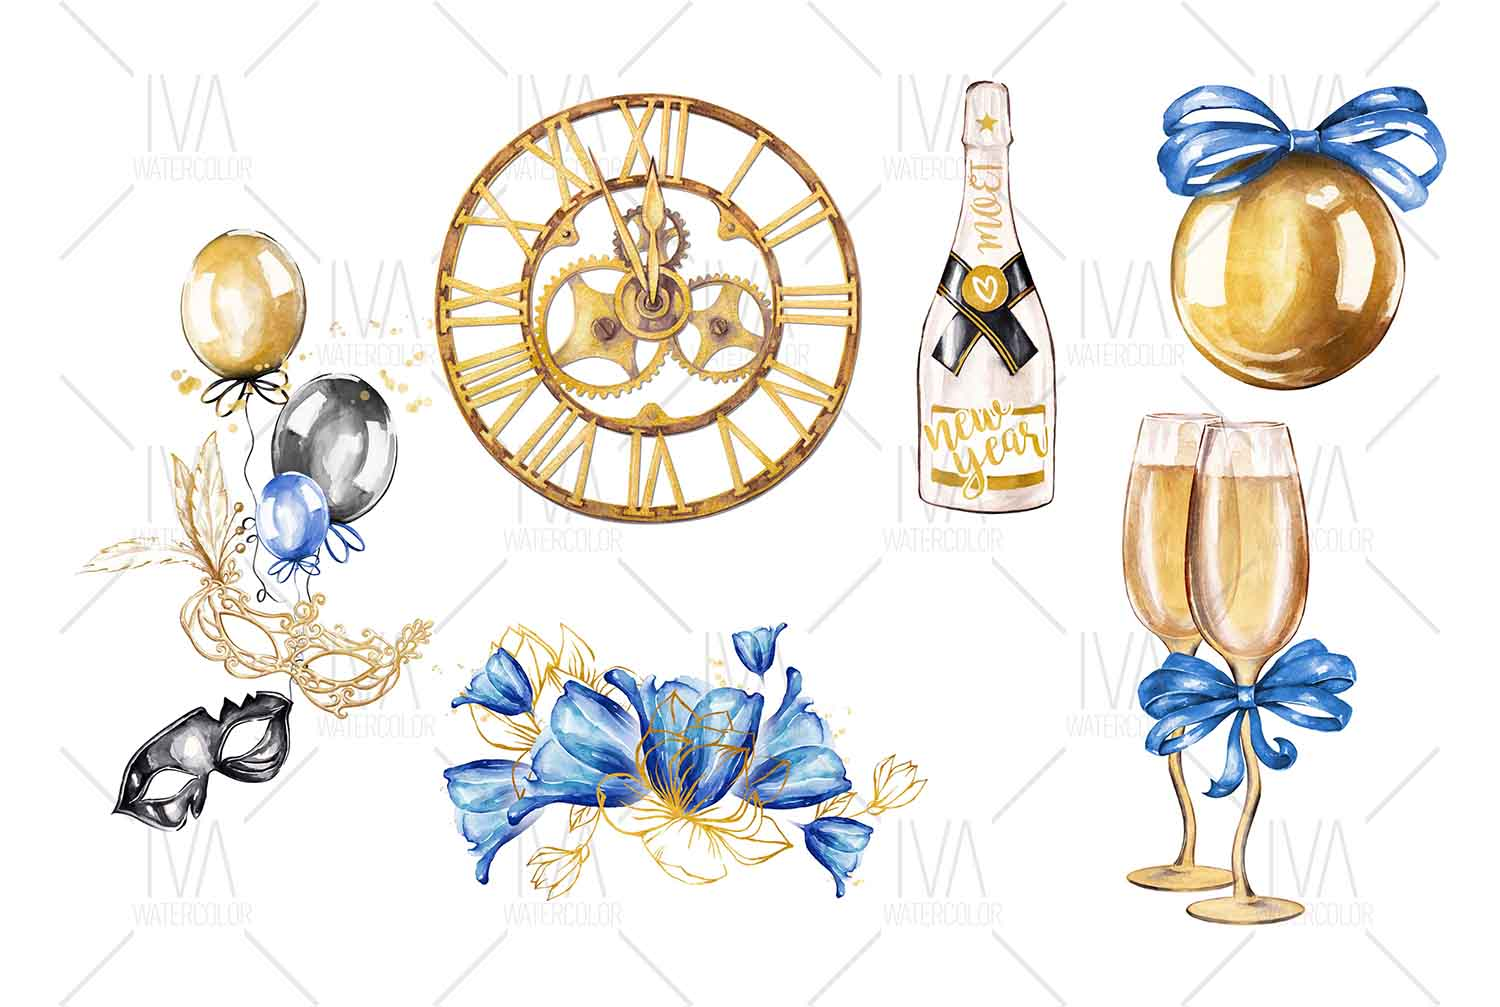 New Year's Eve Clipart example image 2